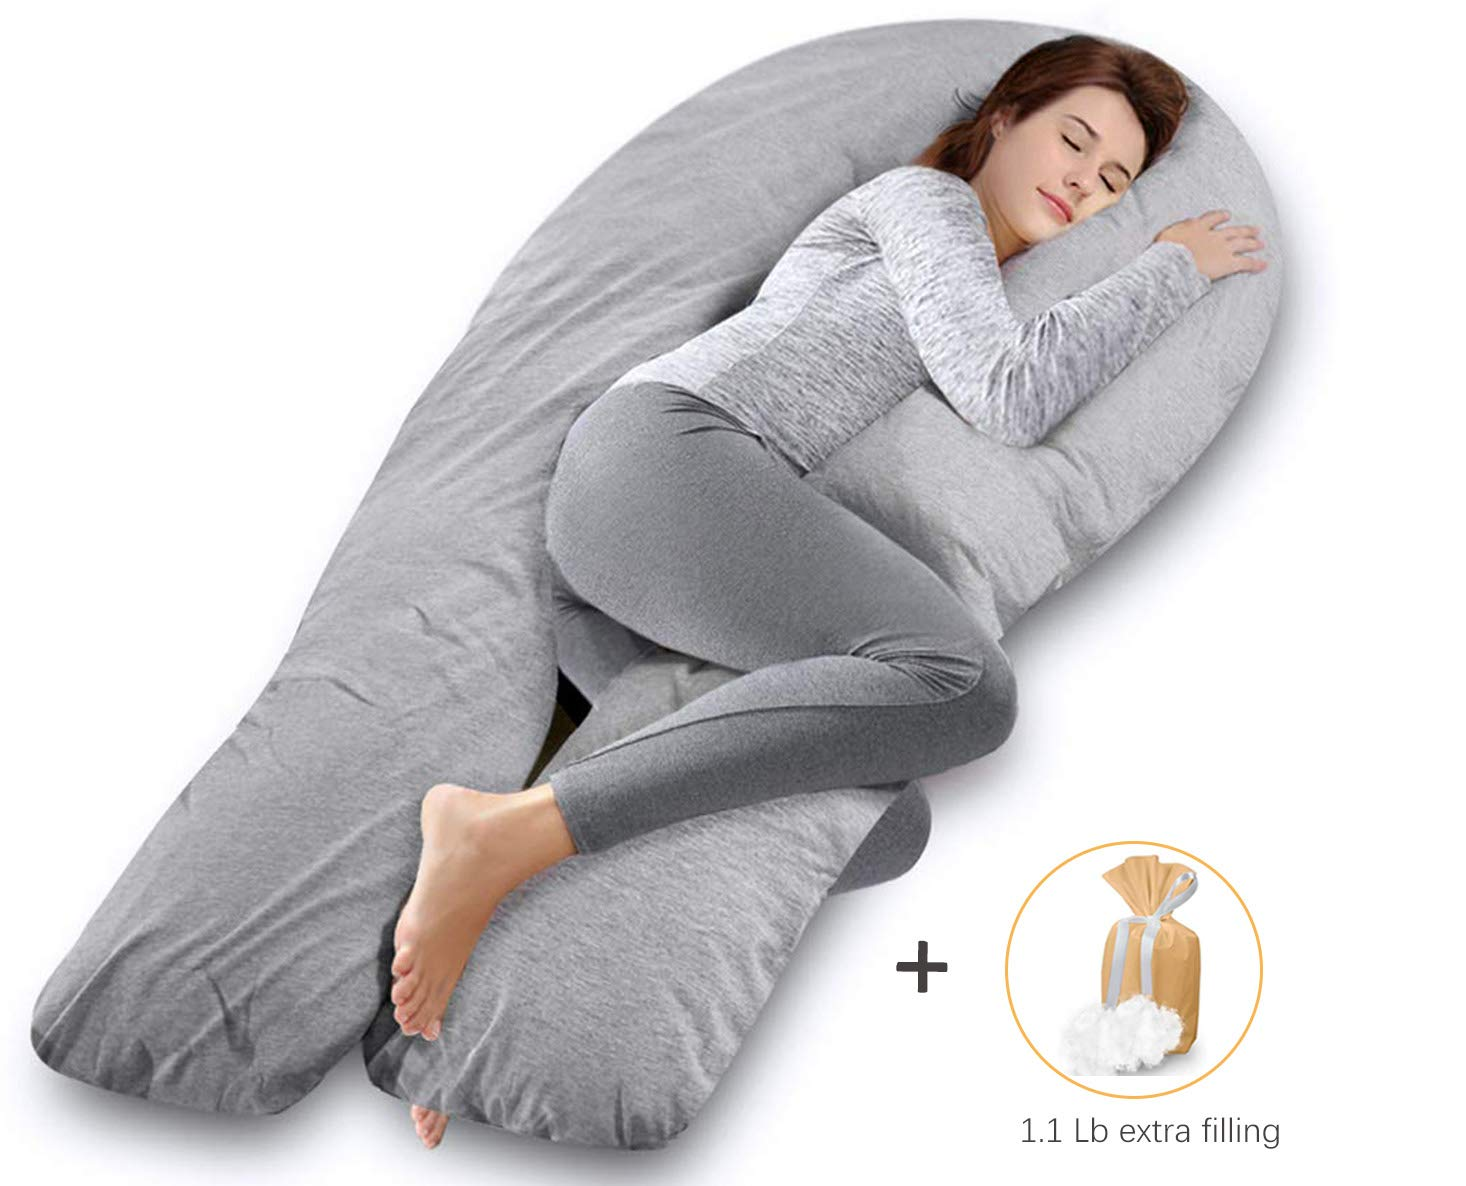 AngQi 65-inch Full Body Support Pillow with Washable Jersey Cover, U Shaped Pregnancy Pillow, Gray